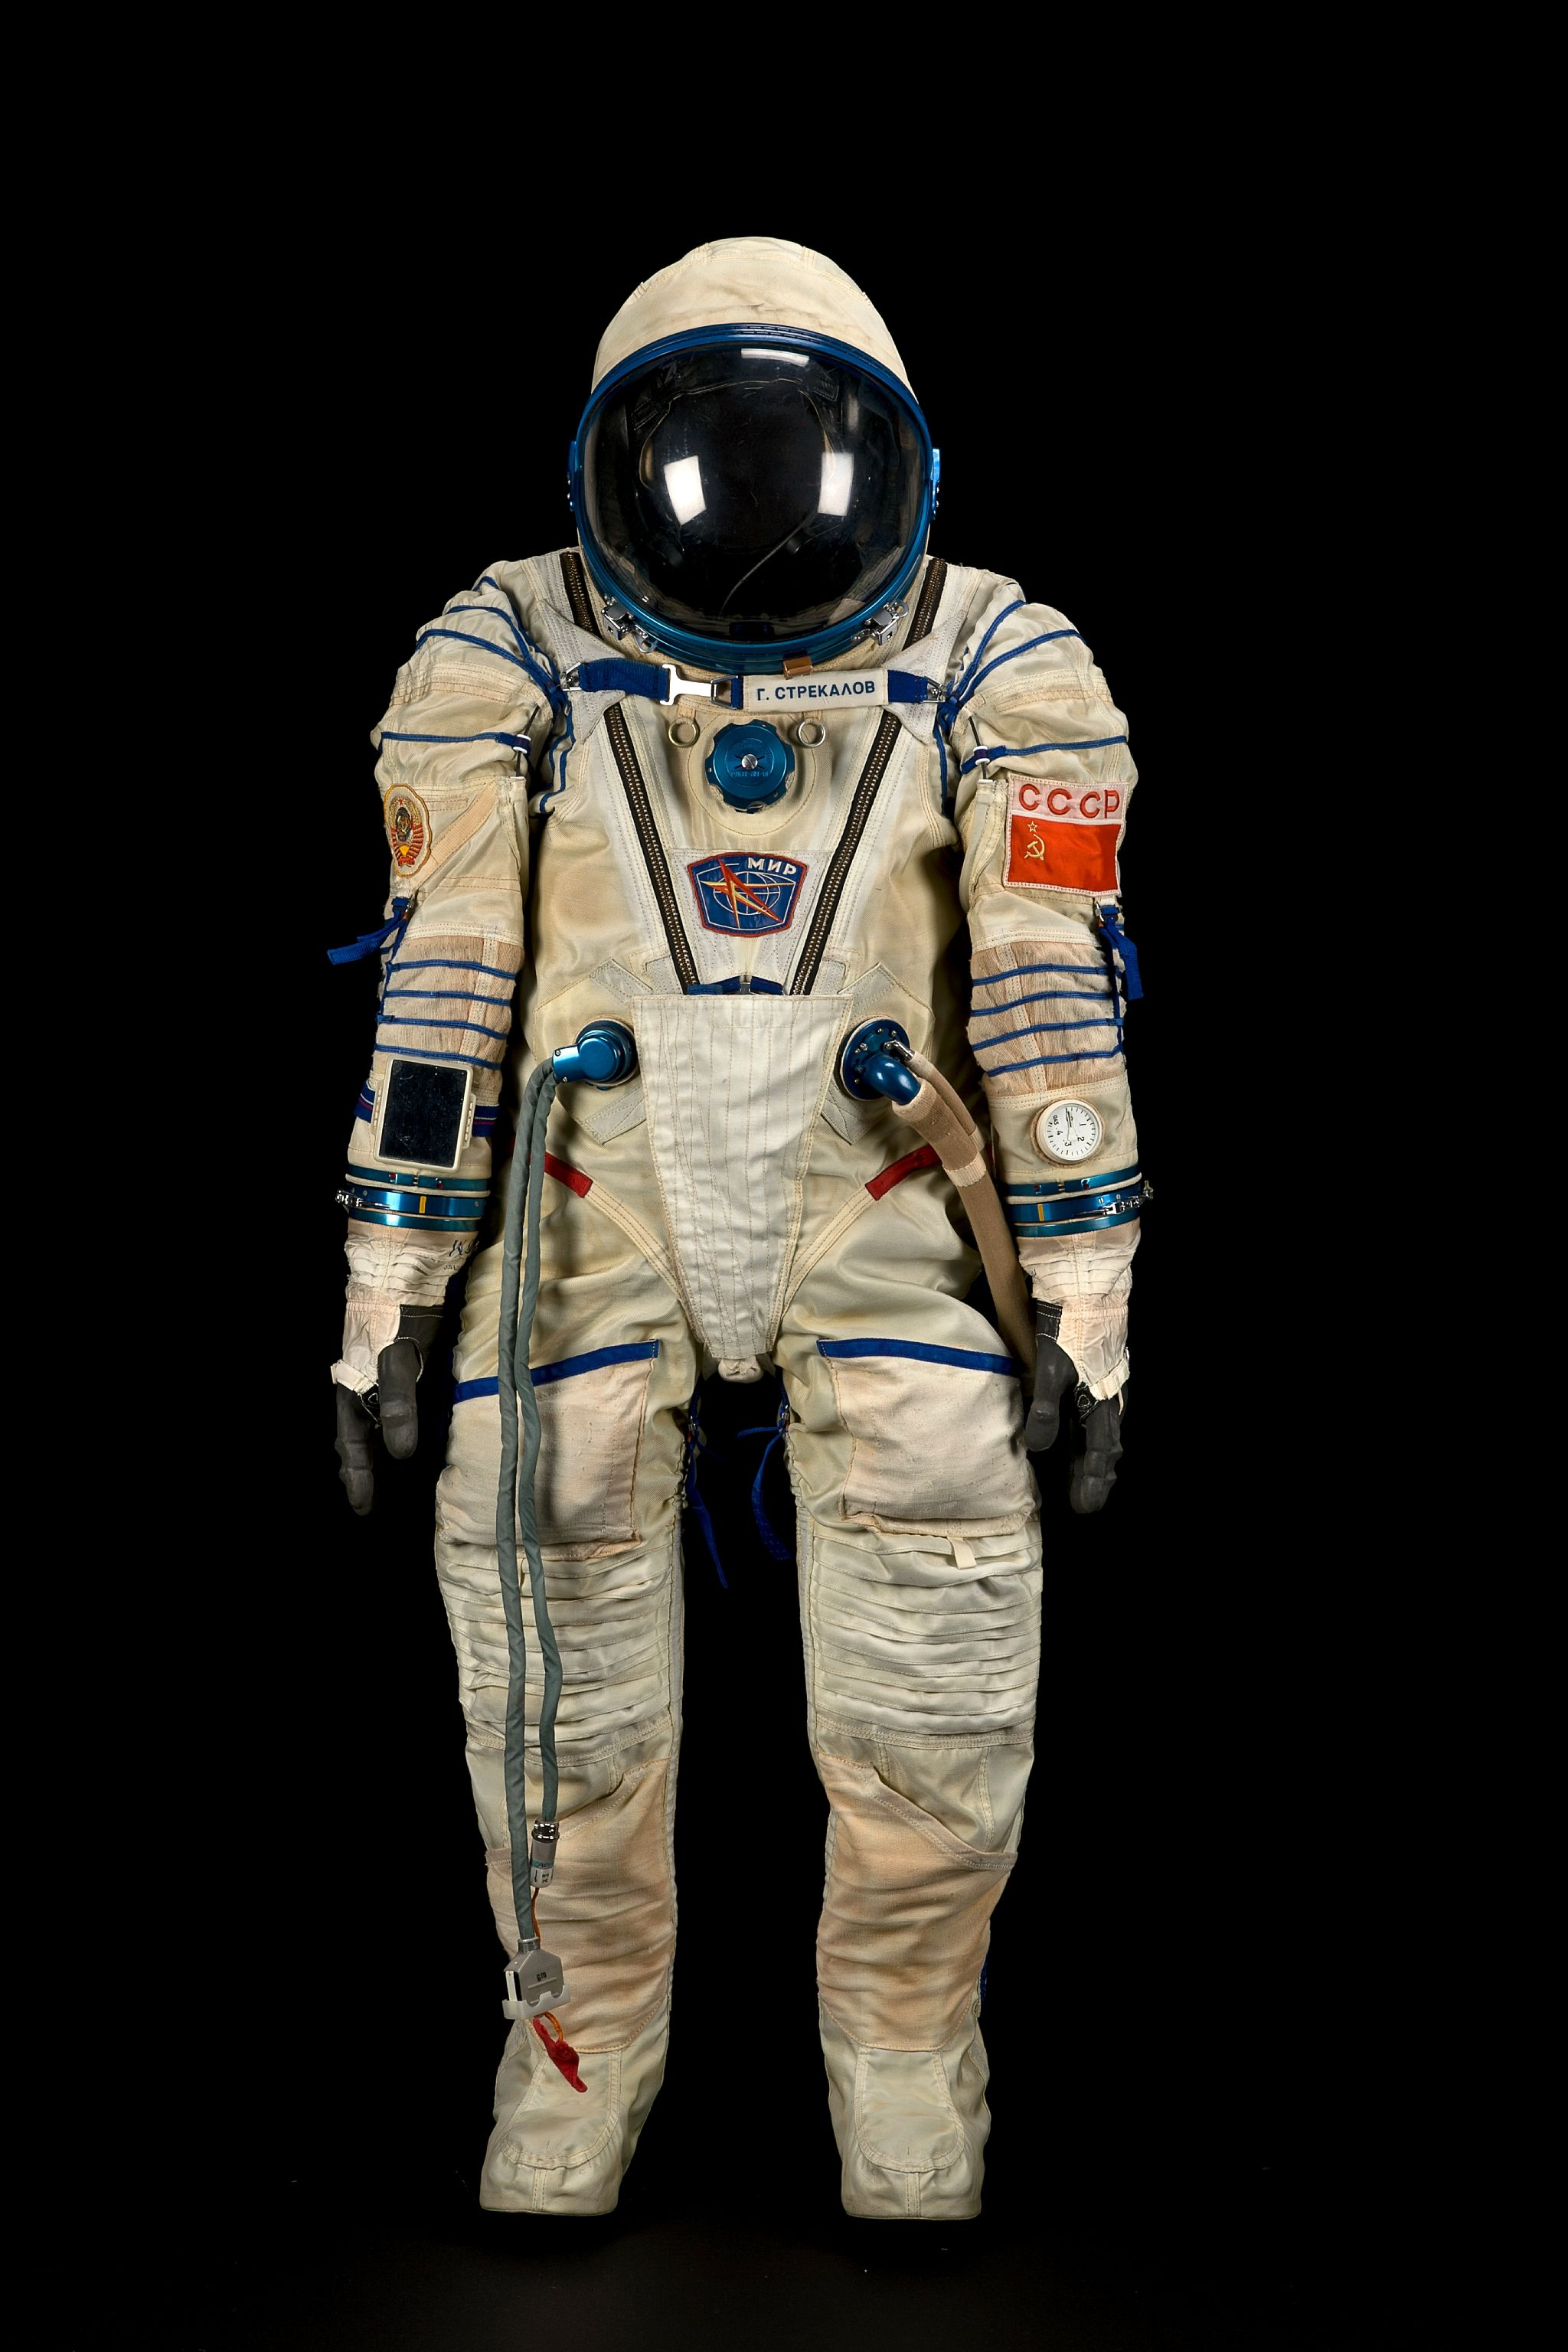 Buy a spacesuit in the Bonhams Space History Sale